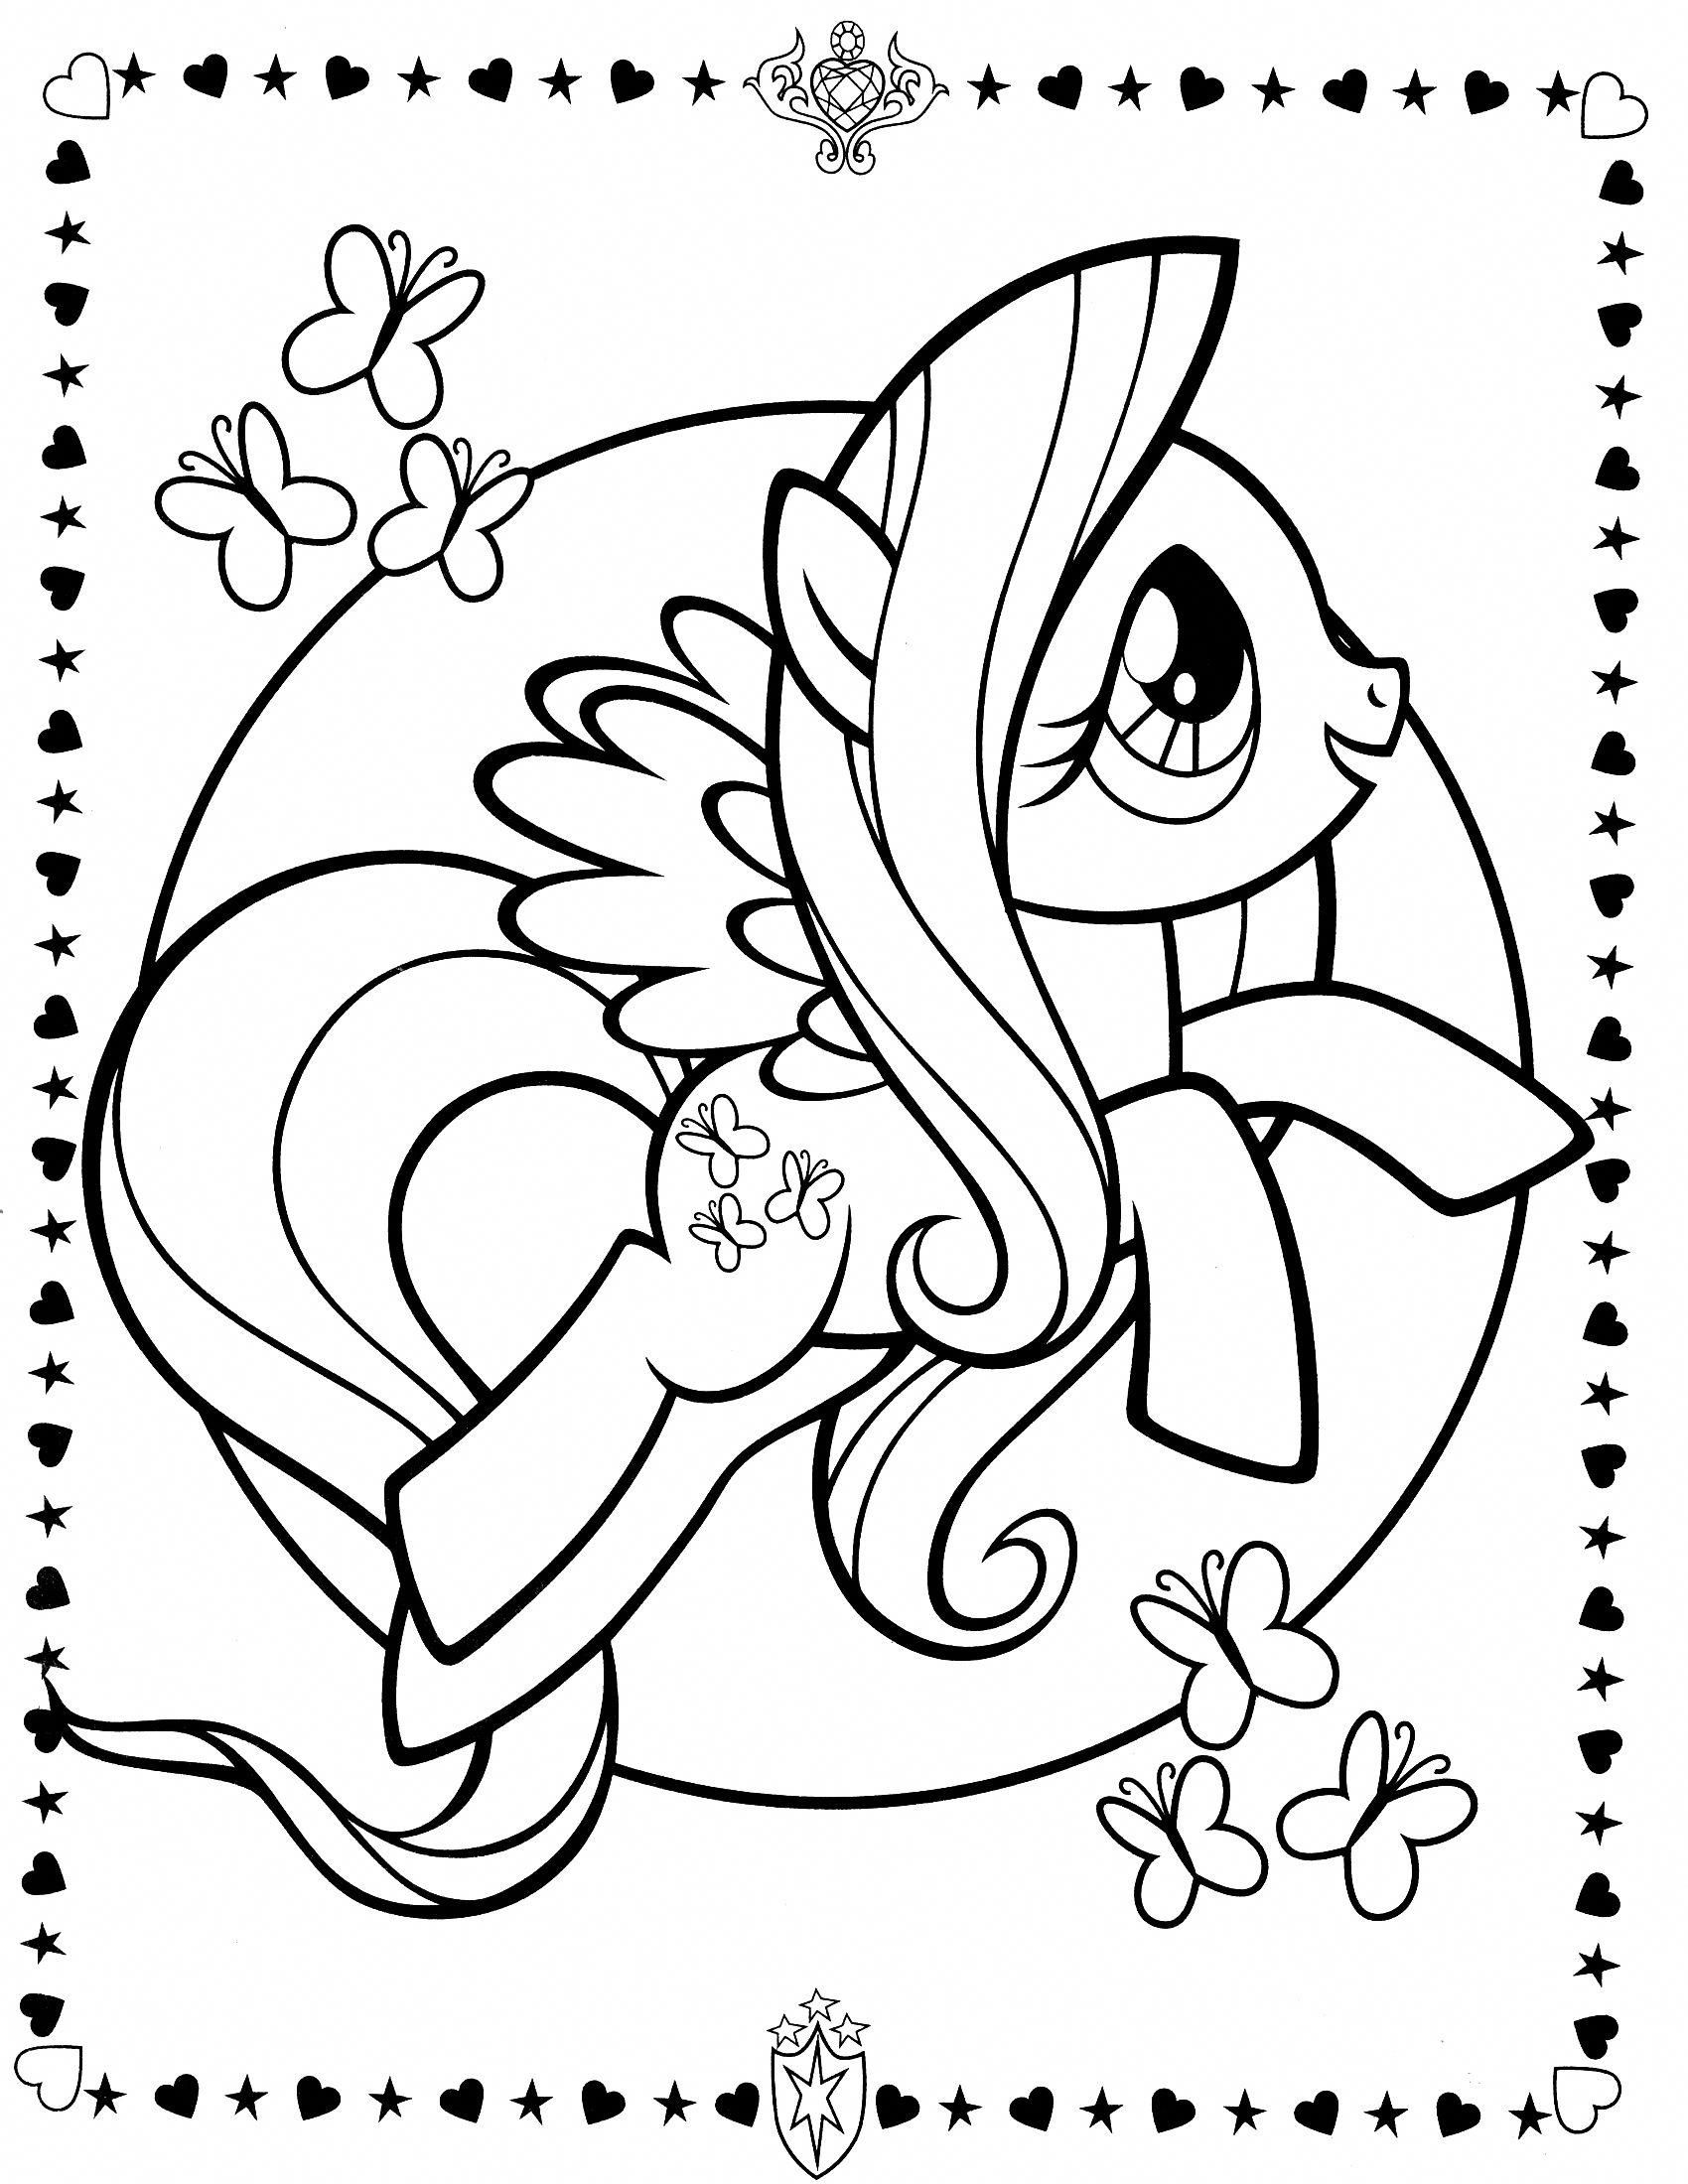 My Little Pony Coloring Page My Little Pony Coloring Unicorn Coloring Pages Coloring Pages